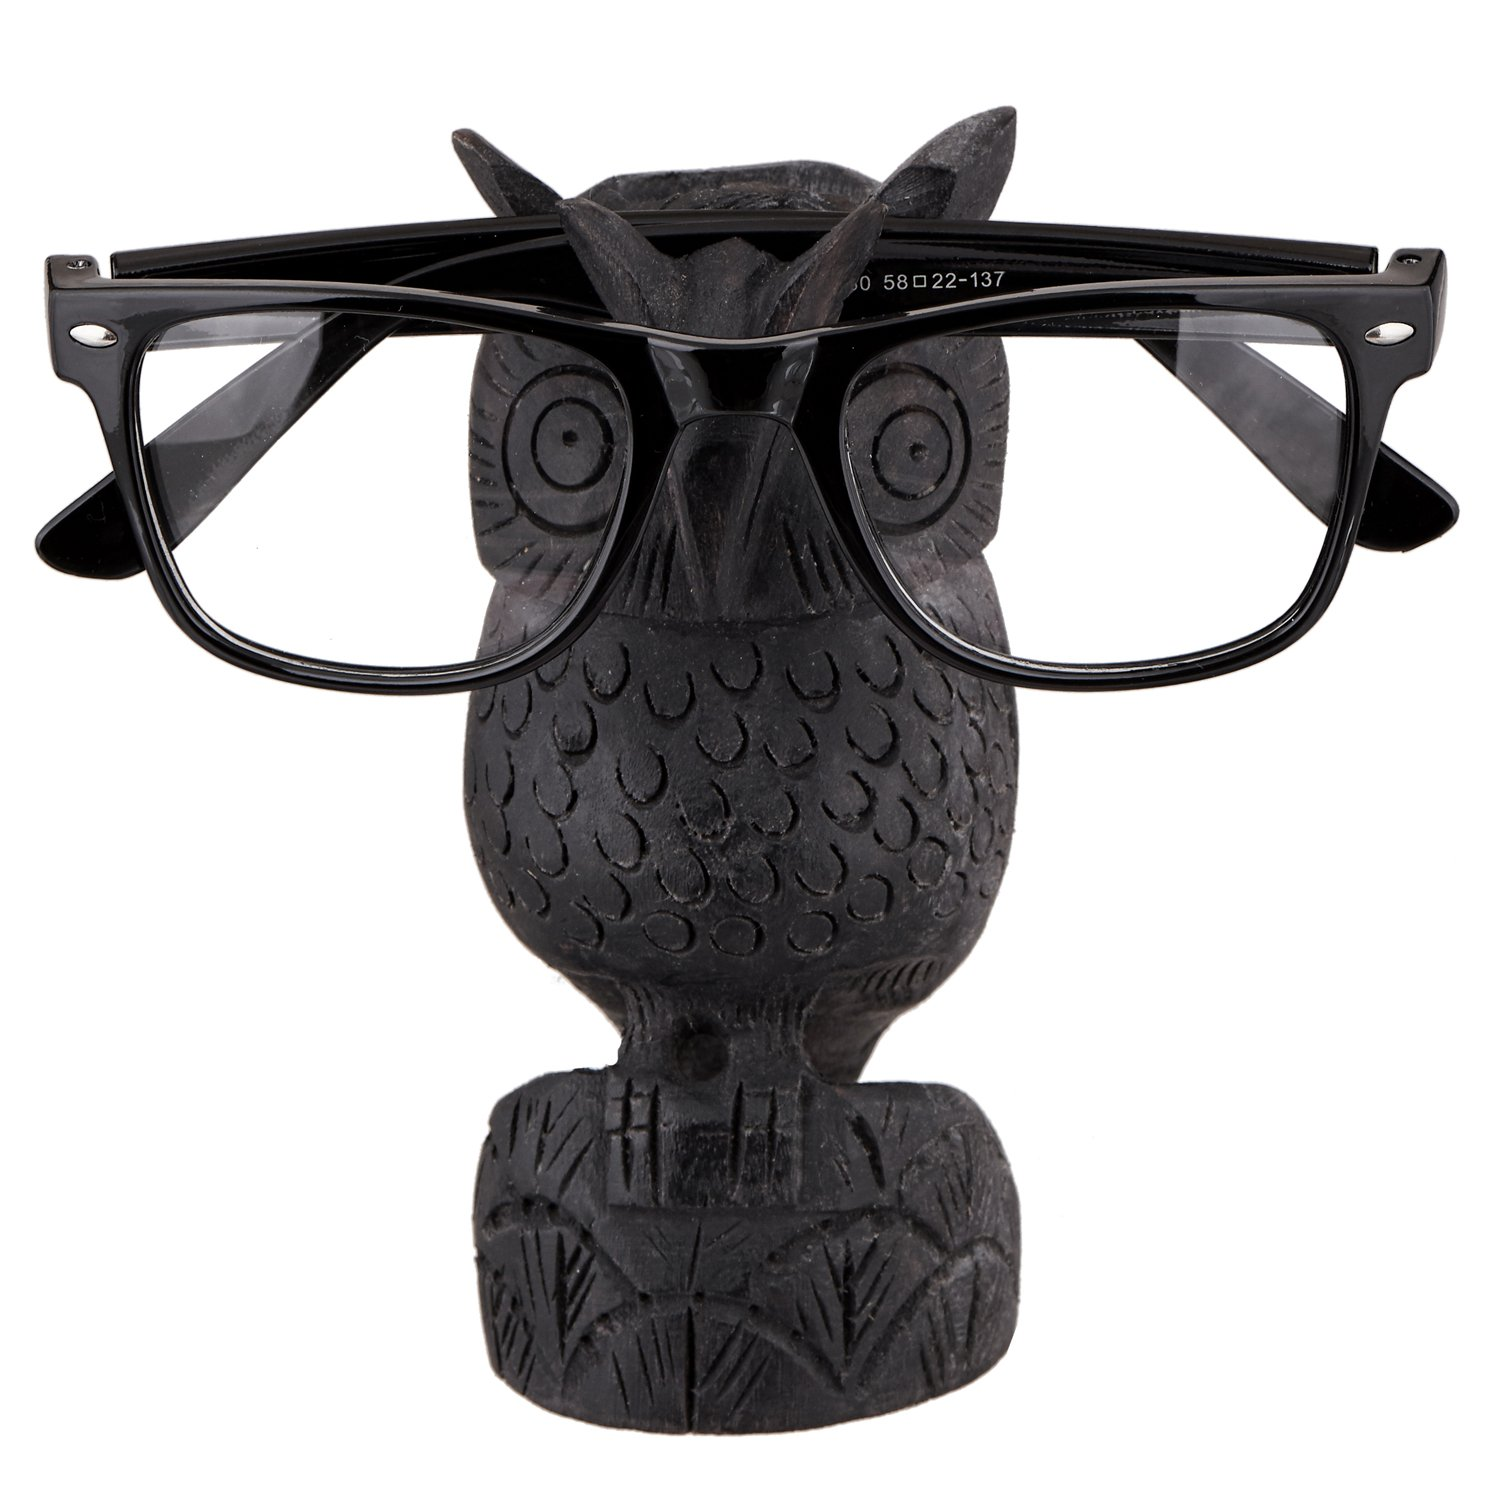 12c1a84fdc44 Amazon.com  Spectacle Holder Wooden Eyeglass Stand Handmade Display Home  and Office Decor Accessories A Perfect Gift for Him or Her (Owl 1)  Home    Kitchen